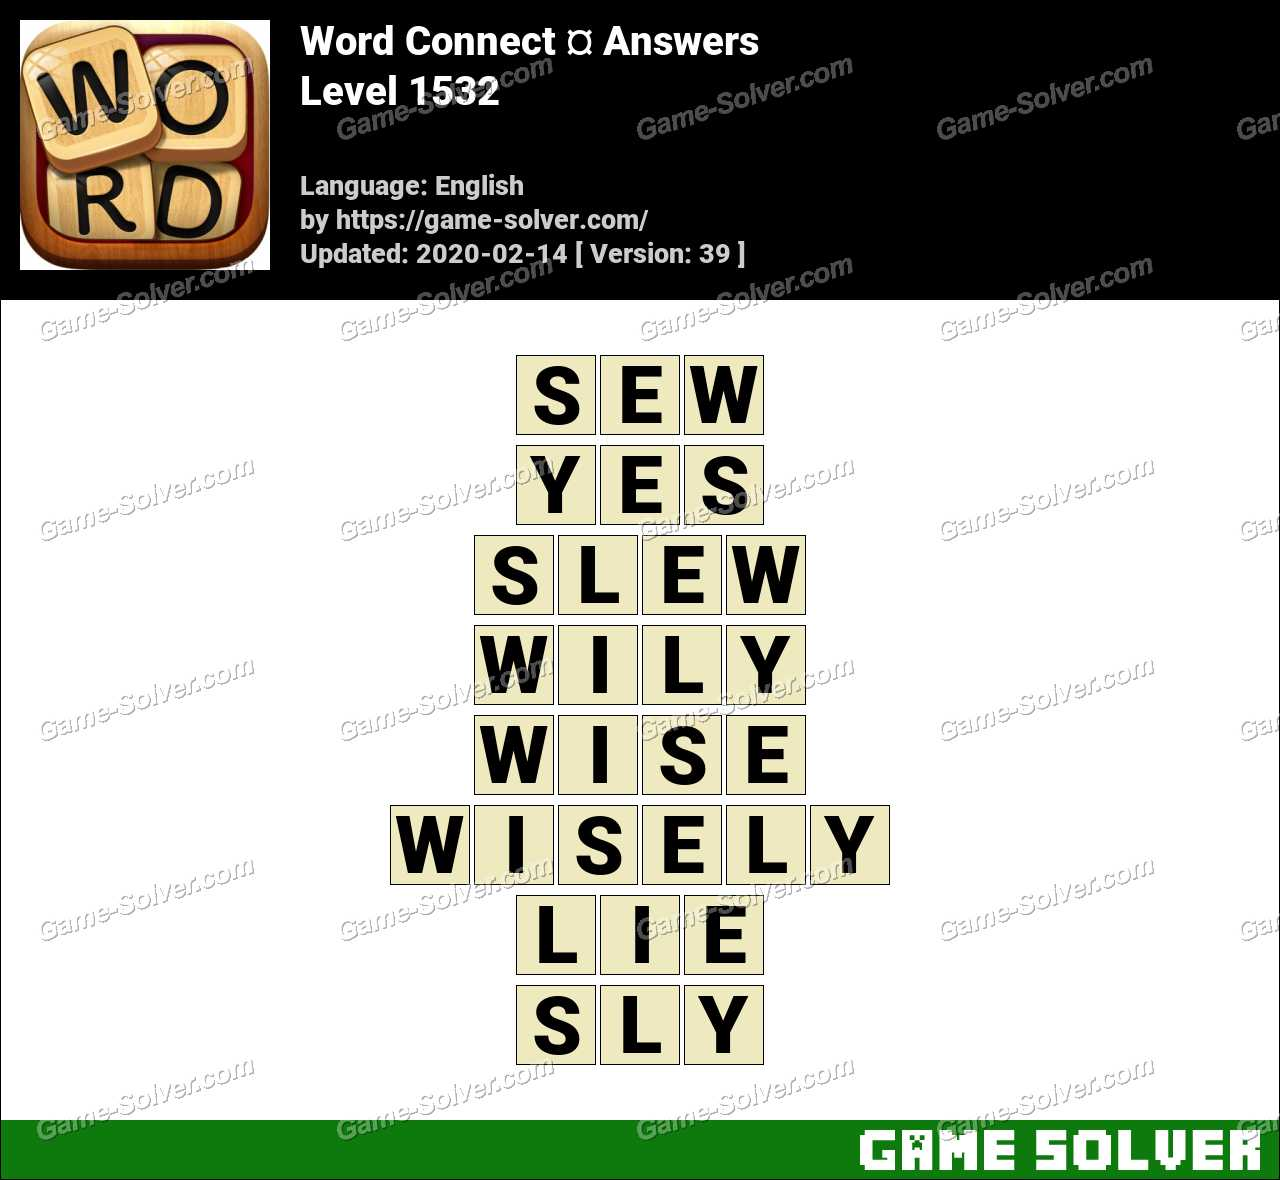 Word Connect Level 1532 Answers